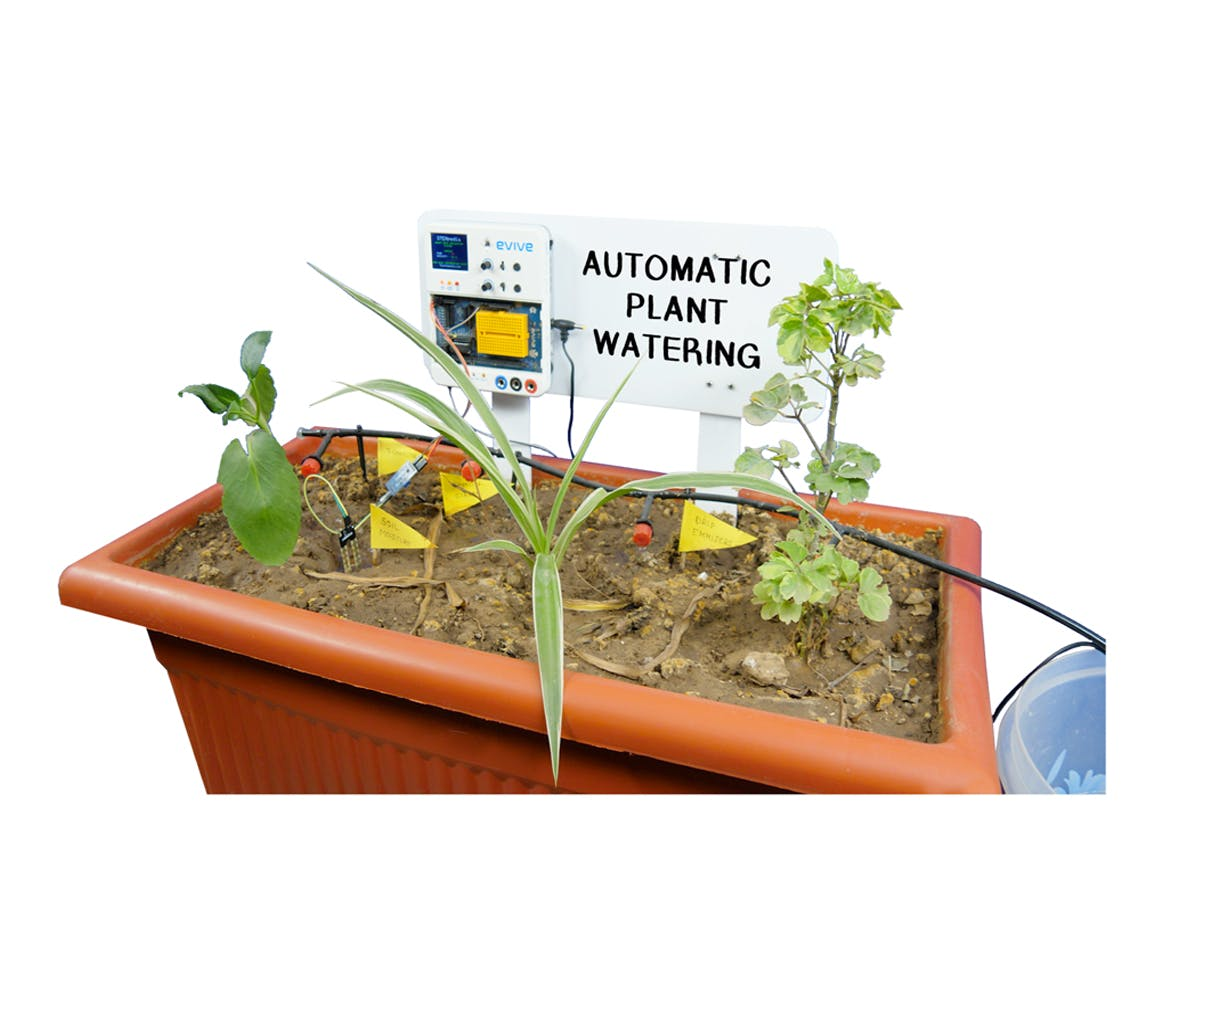 Automatic Plant Watering System Using Arduino